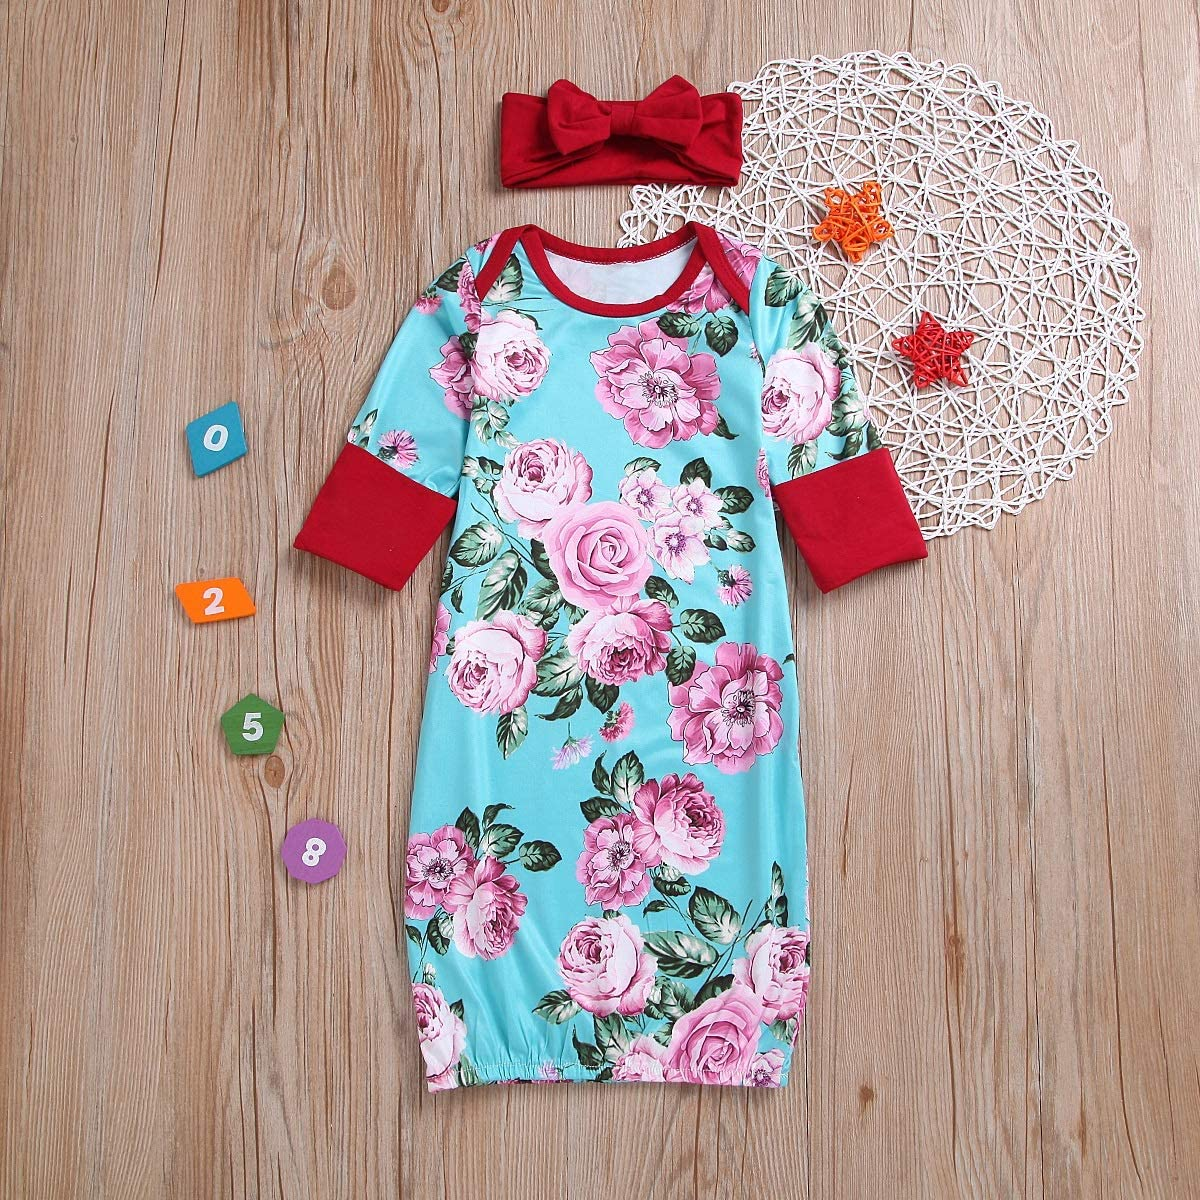 puseky Infant Toddler Baby Girls Floral Print Sleeping Gown Dress Sleepwear+Headband Outfits Set